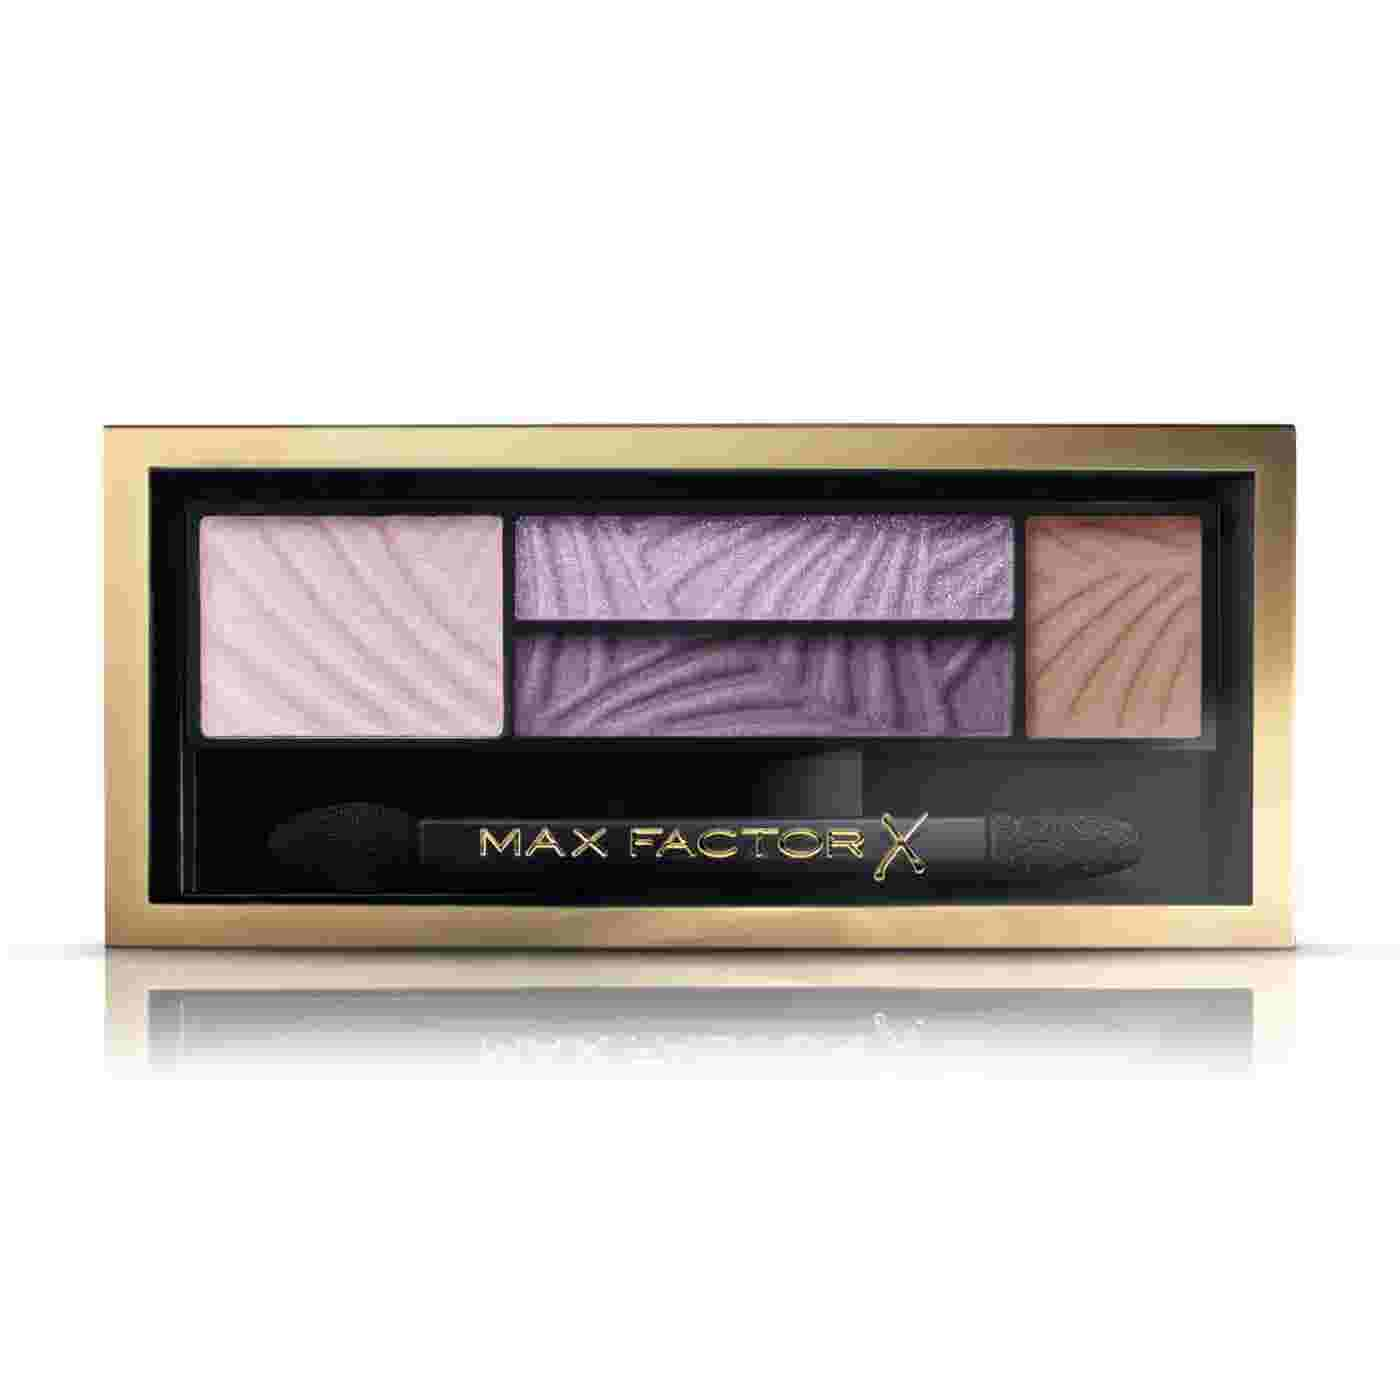 Max Factor Smokey Eye Drama Kit in Luxe Lilacs